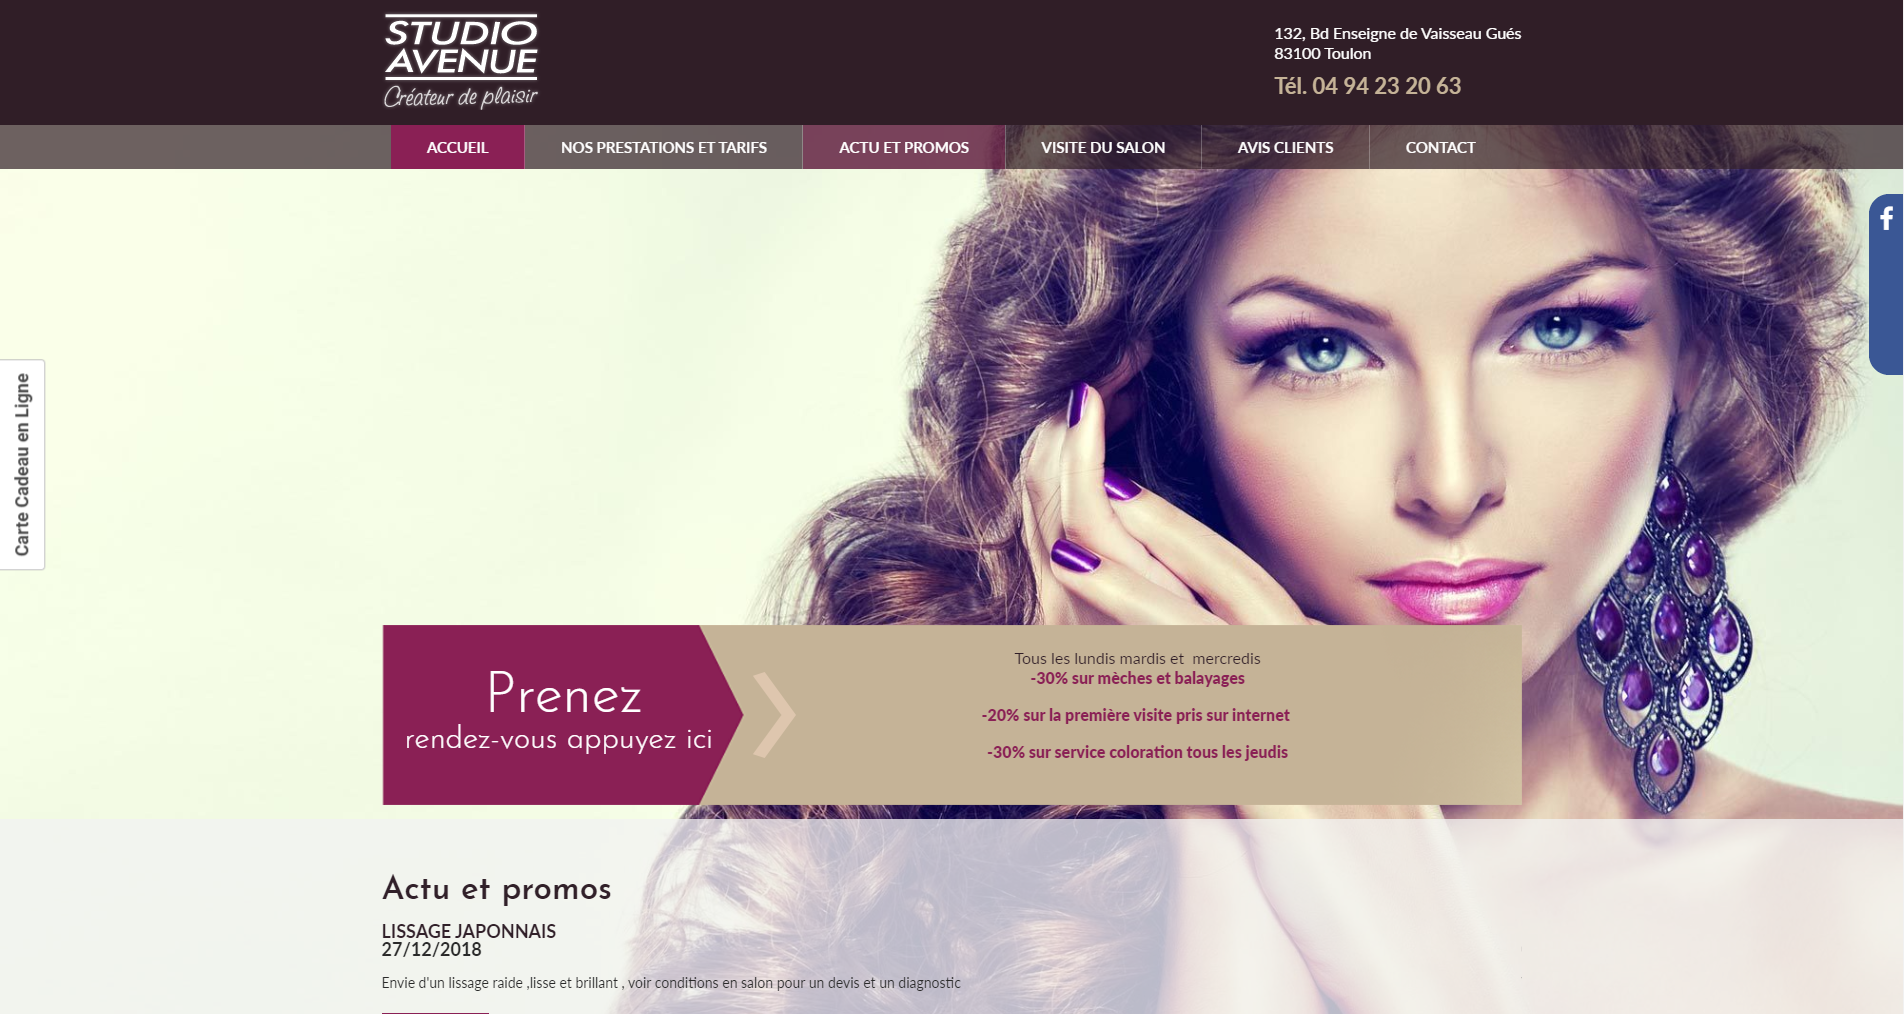 Site web du Studio Avenue 83